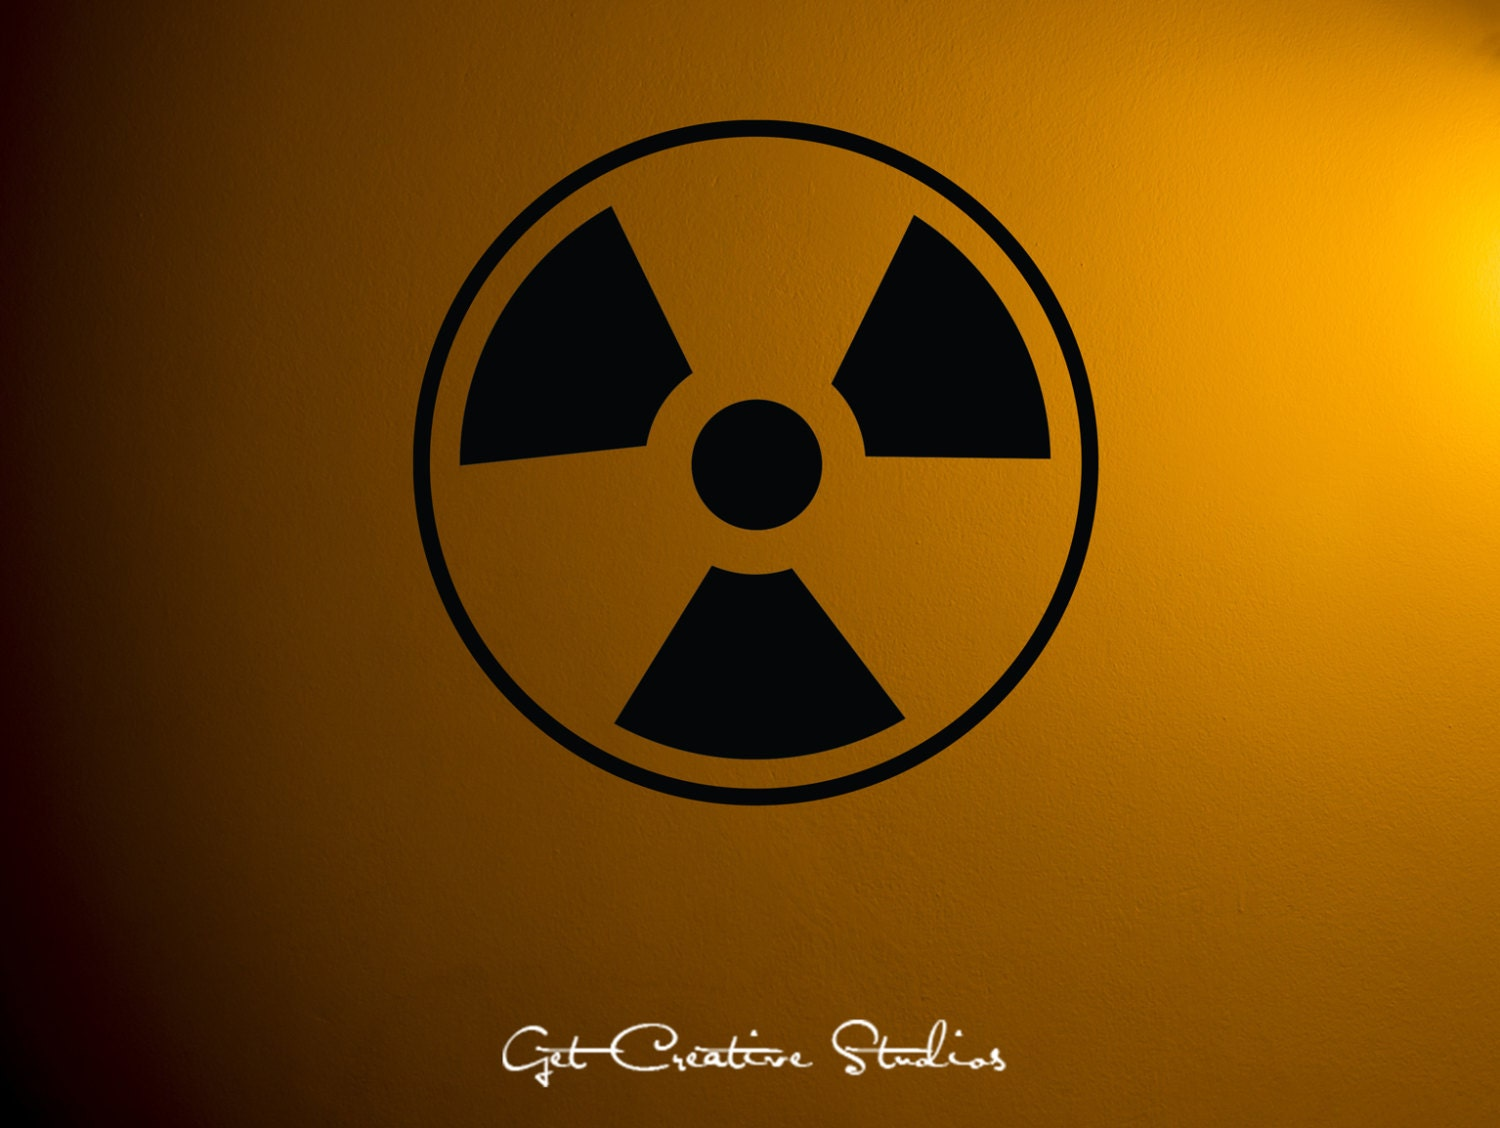 Cool Radioactive Symbol | www.imgkid.com - The Image Kid ...